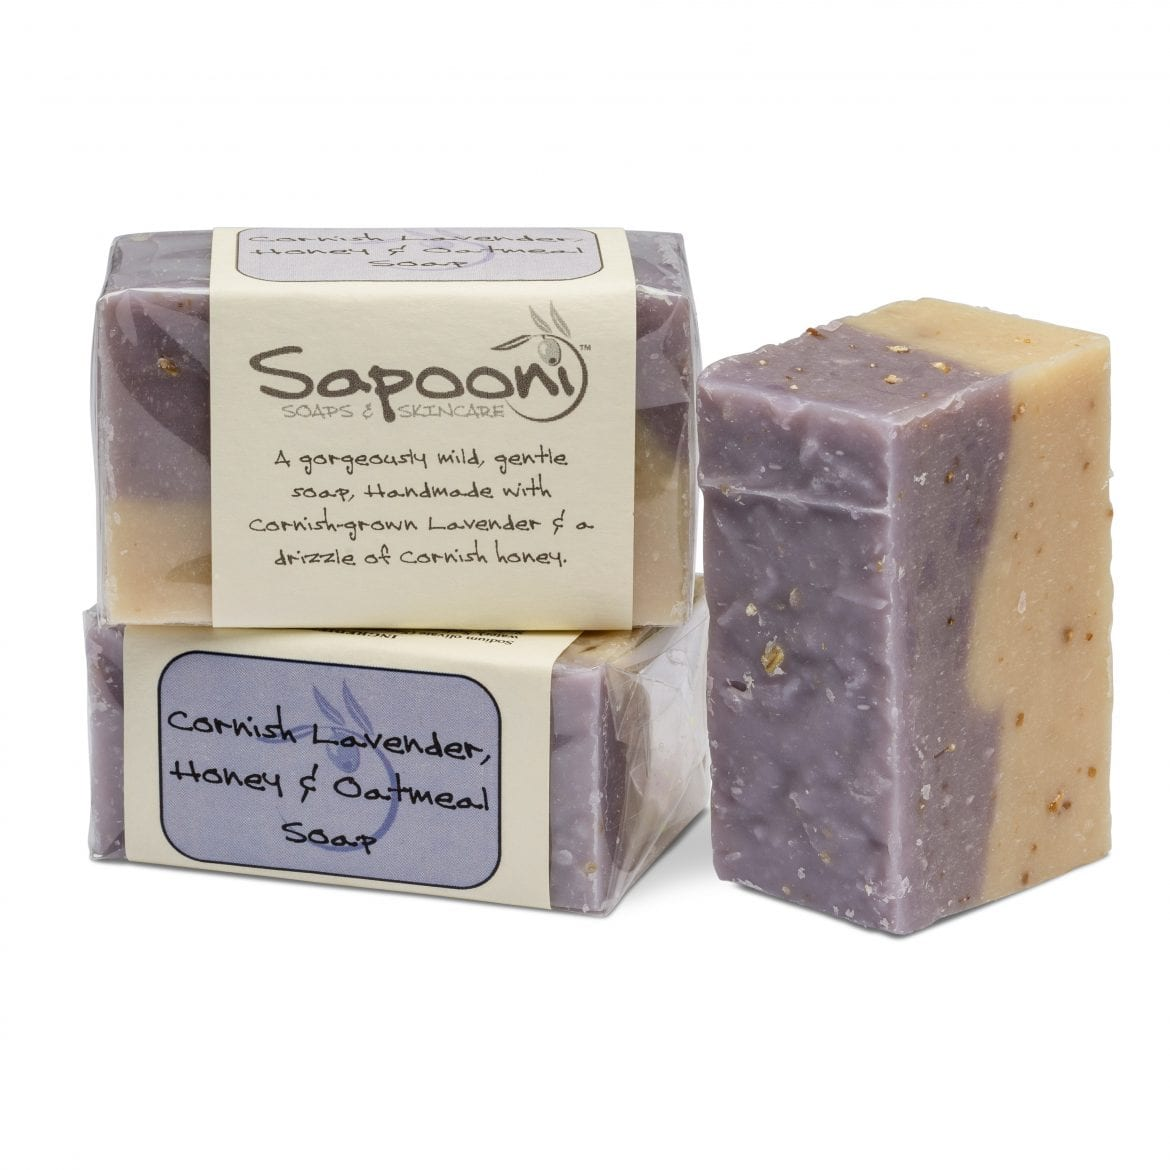 cornish-lavender-soap.jpg